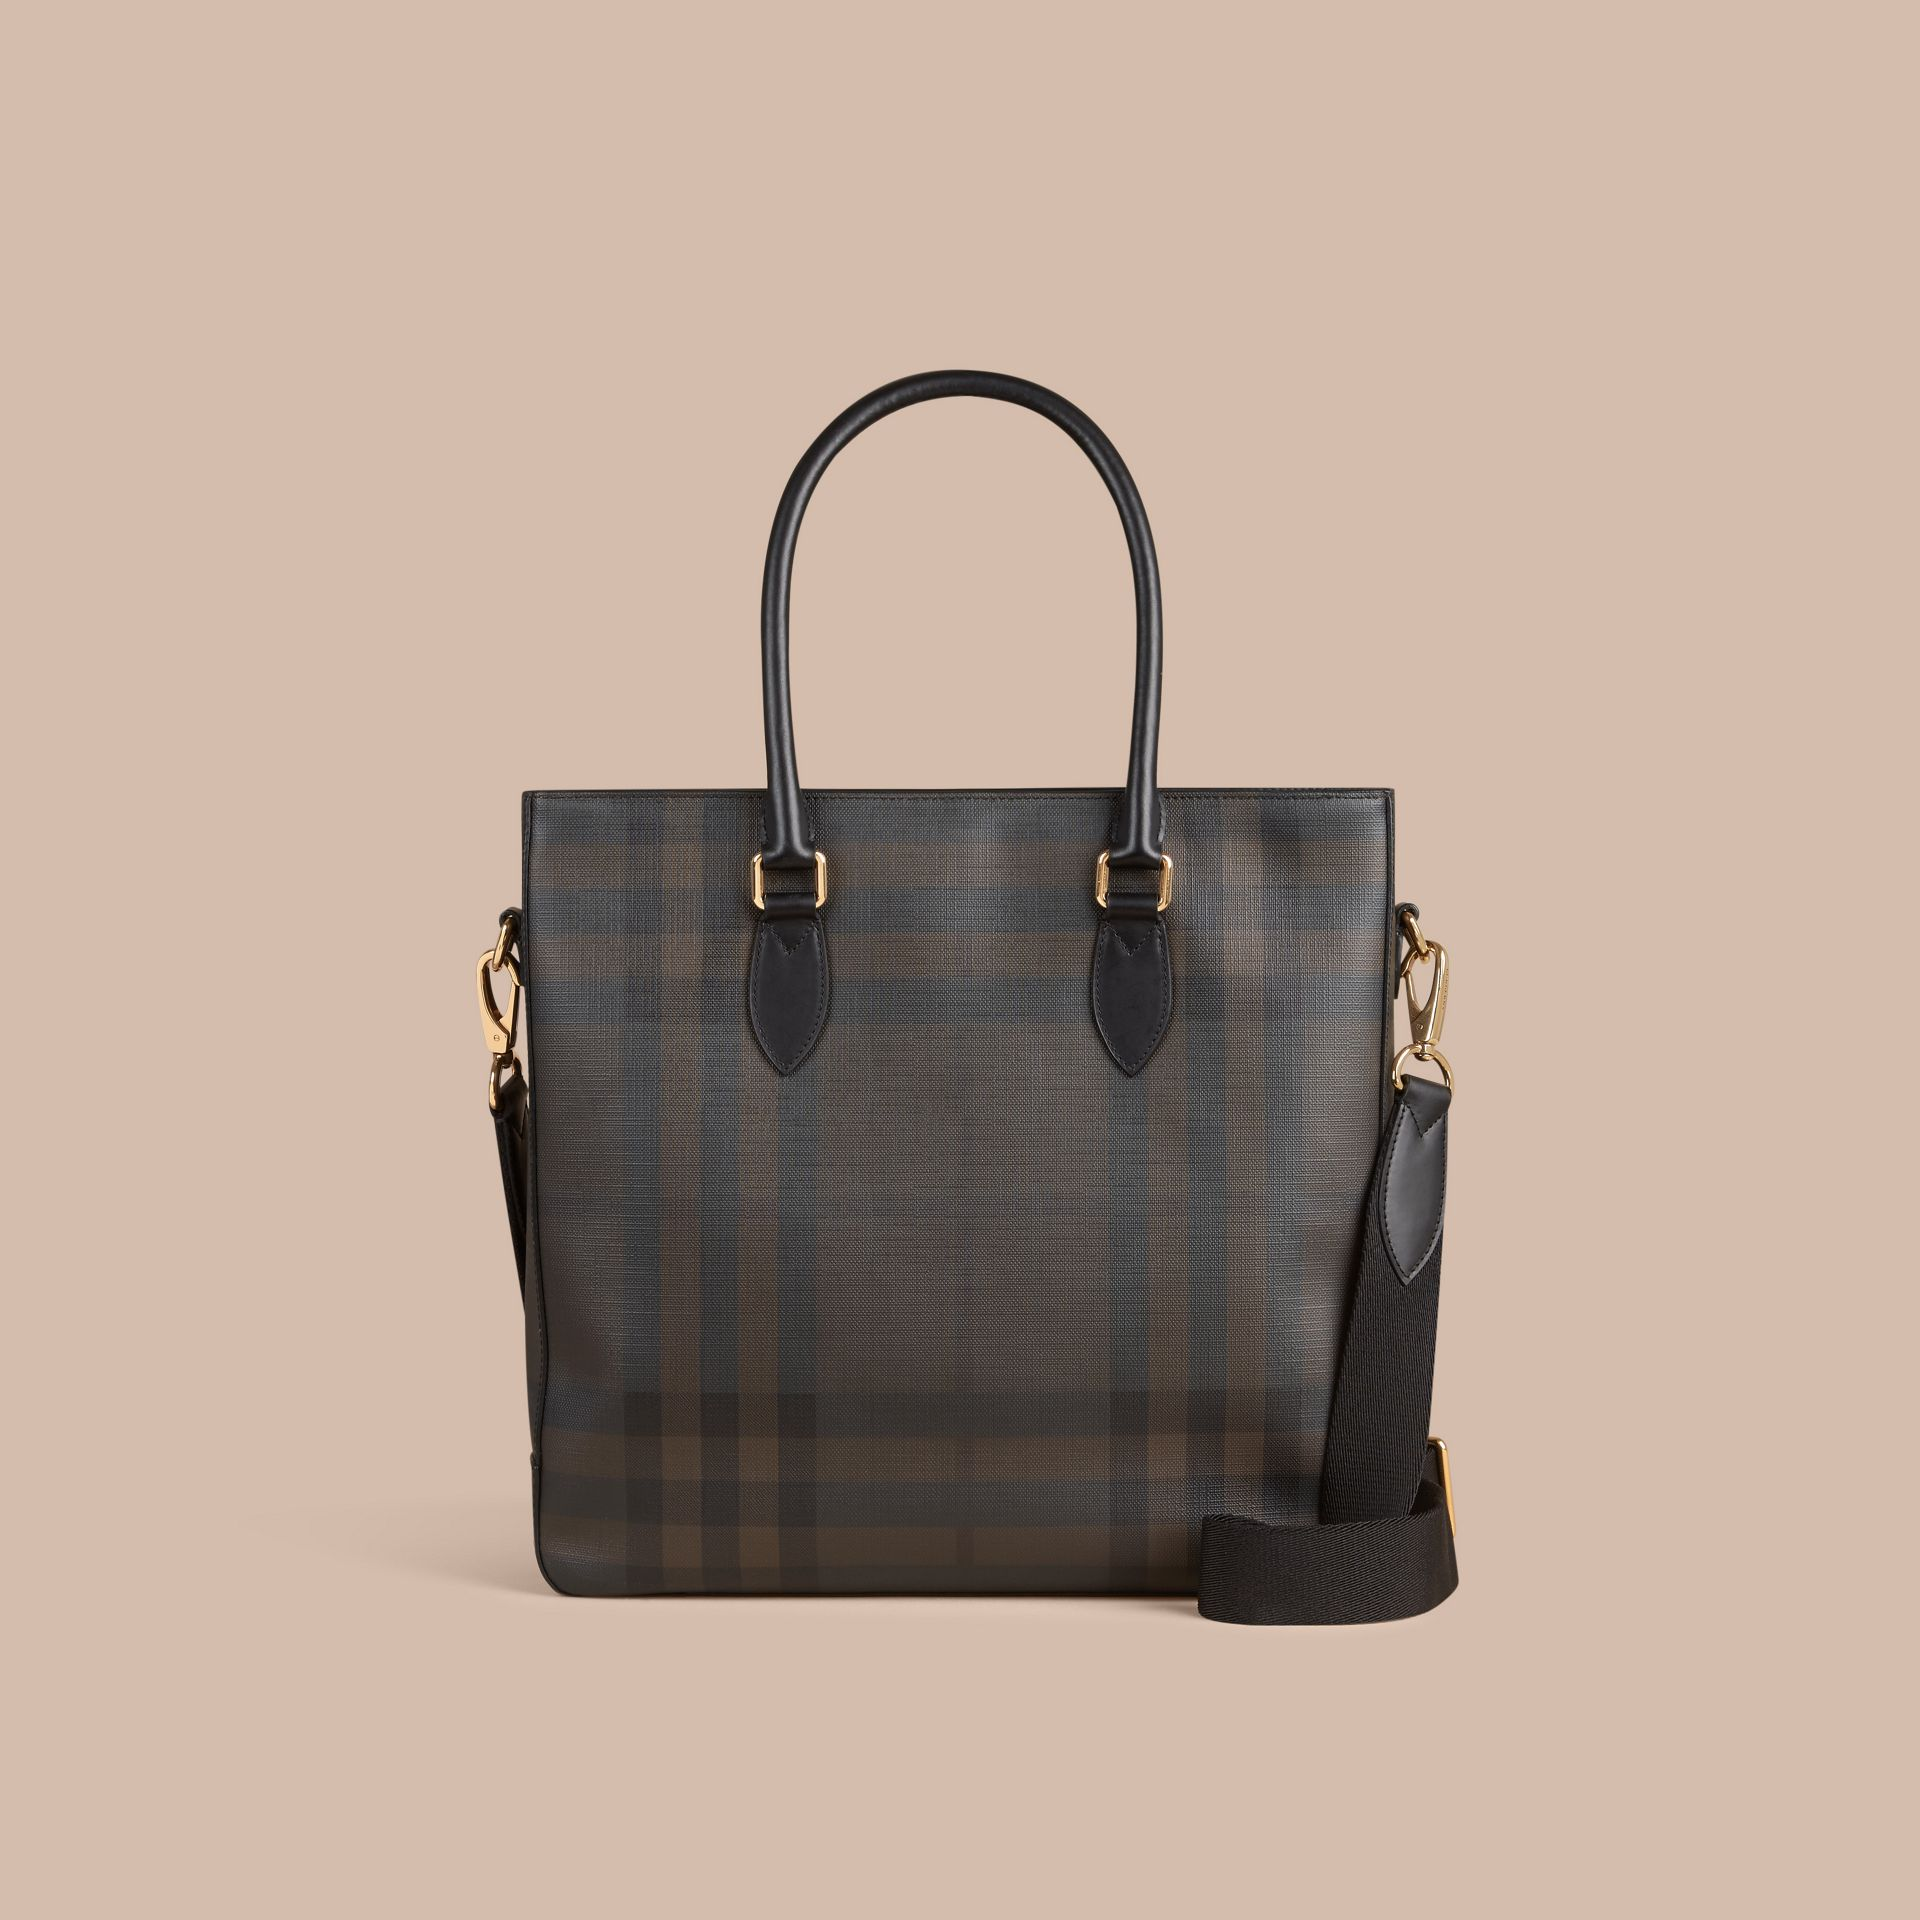 London Check Tote Bag in Black/chocolate - Men | Burberry Australia - gallery image 7